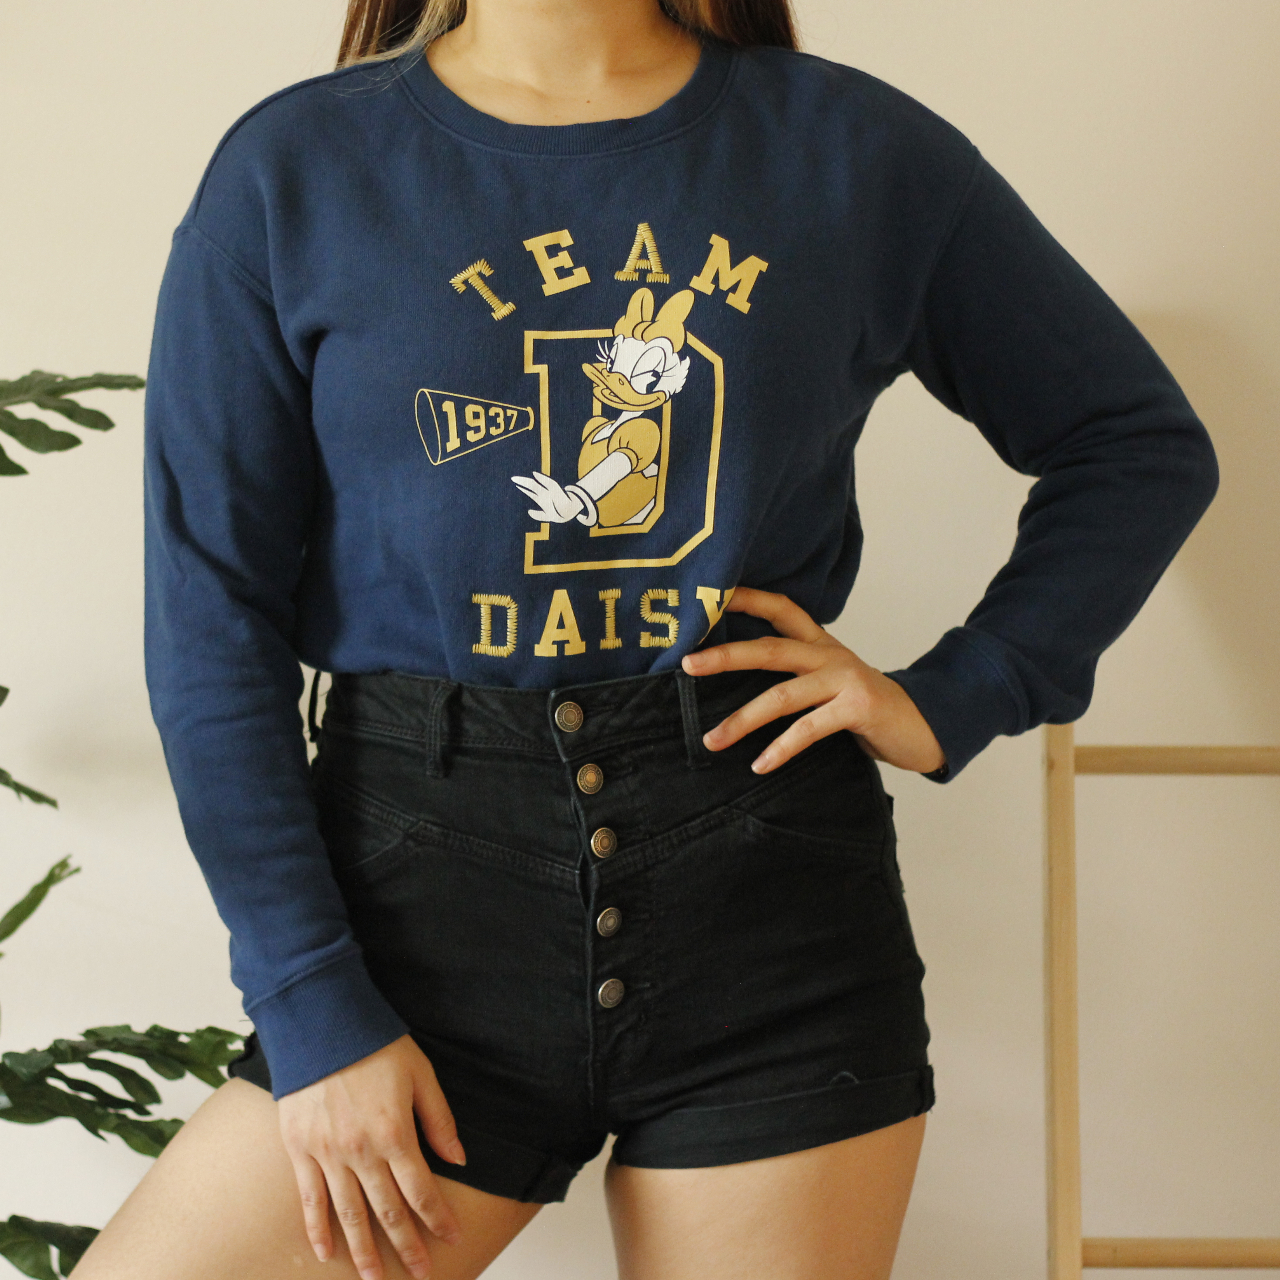 Product Image 1 - Navy Daisy Duck sweater  In great